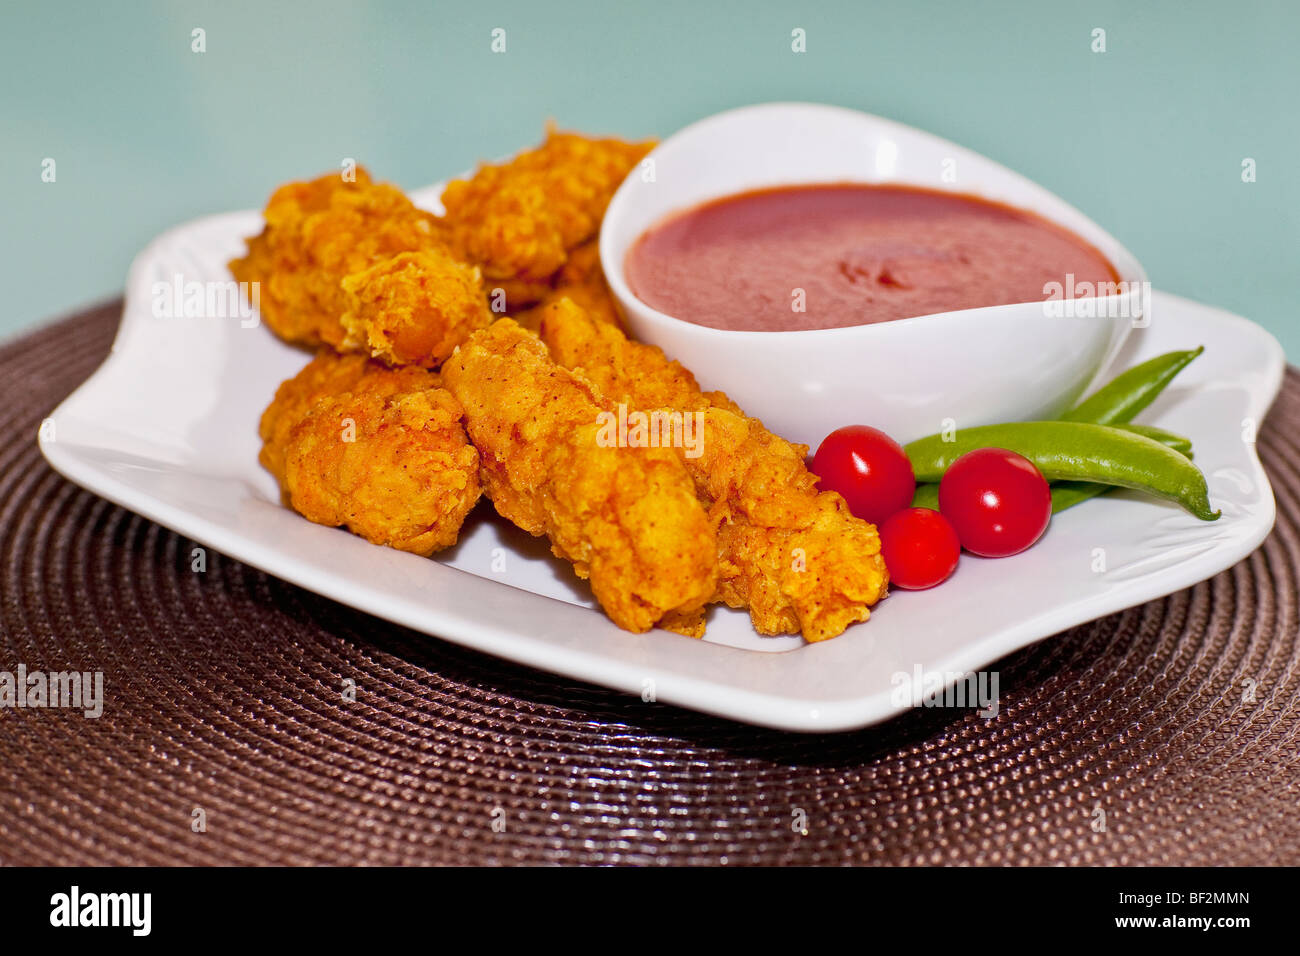 Batter fried chicken with ketchup - Stock Image